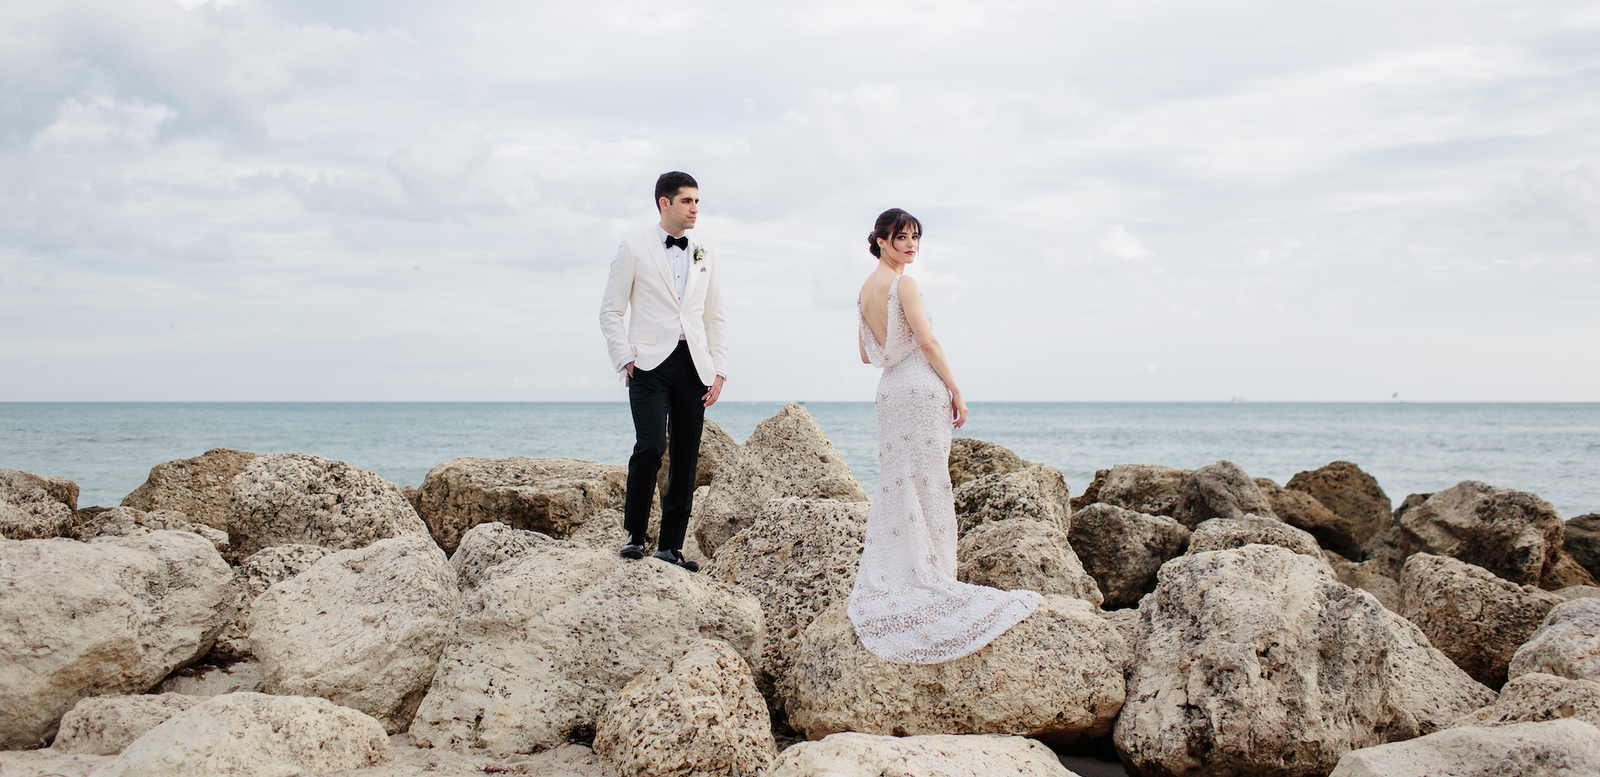 BAZAAR.com Beauty Director Jenna Rosenstein Mixed Art Deco with a Star Wars Obsession for her Wedding in Miami Beach